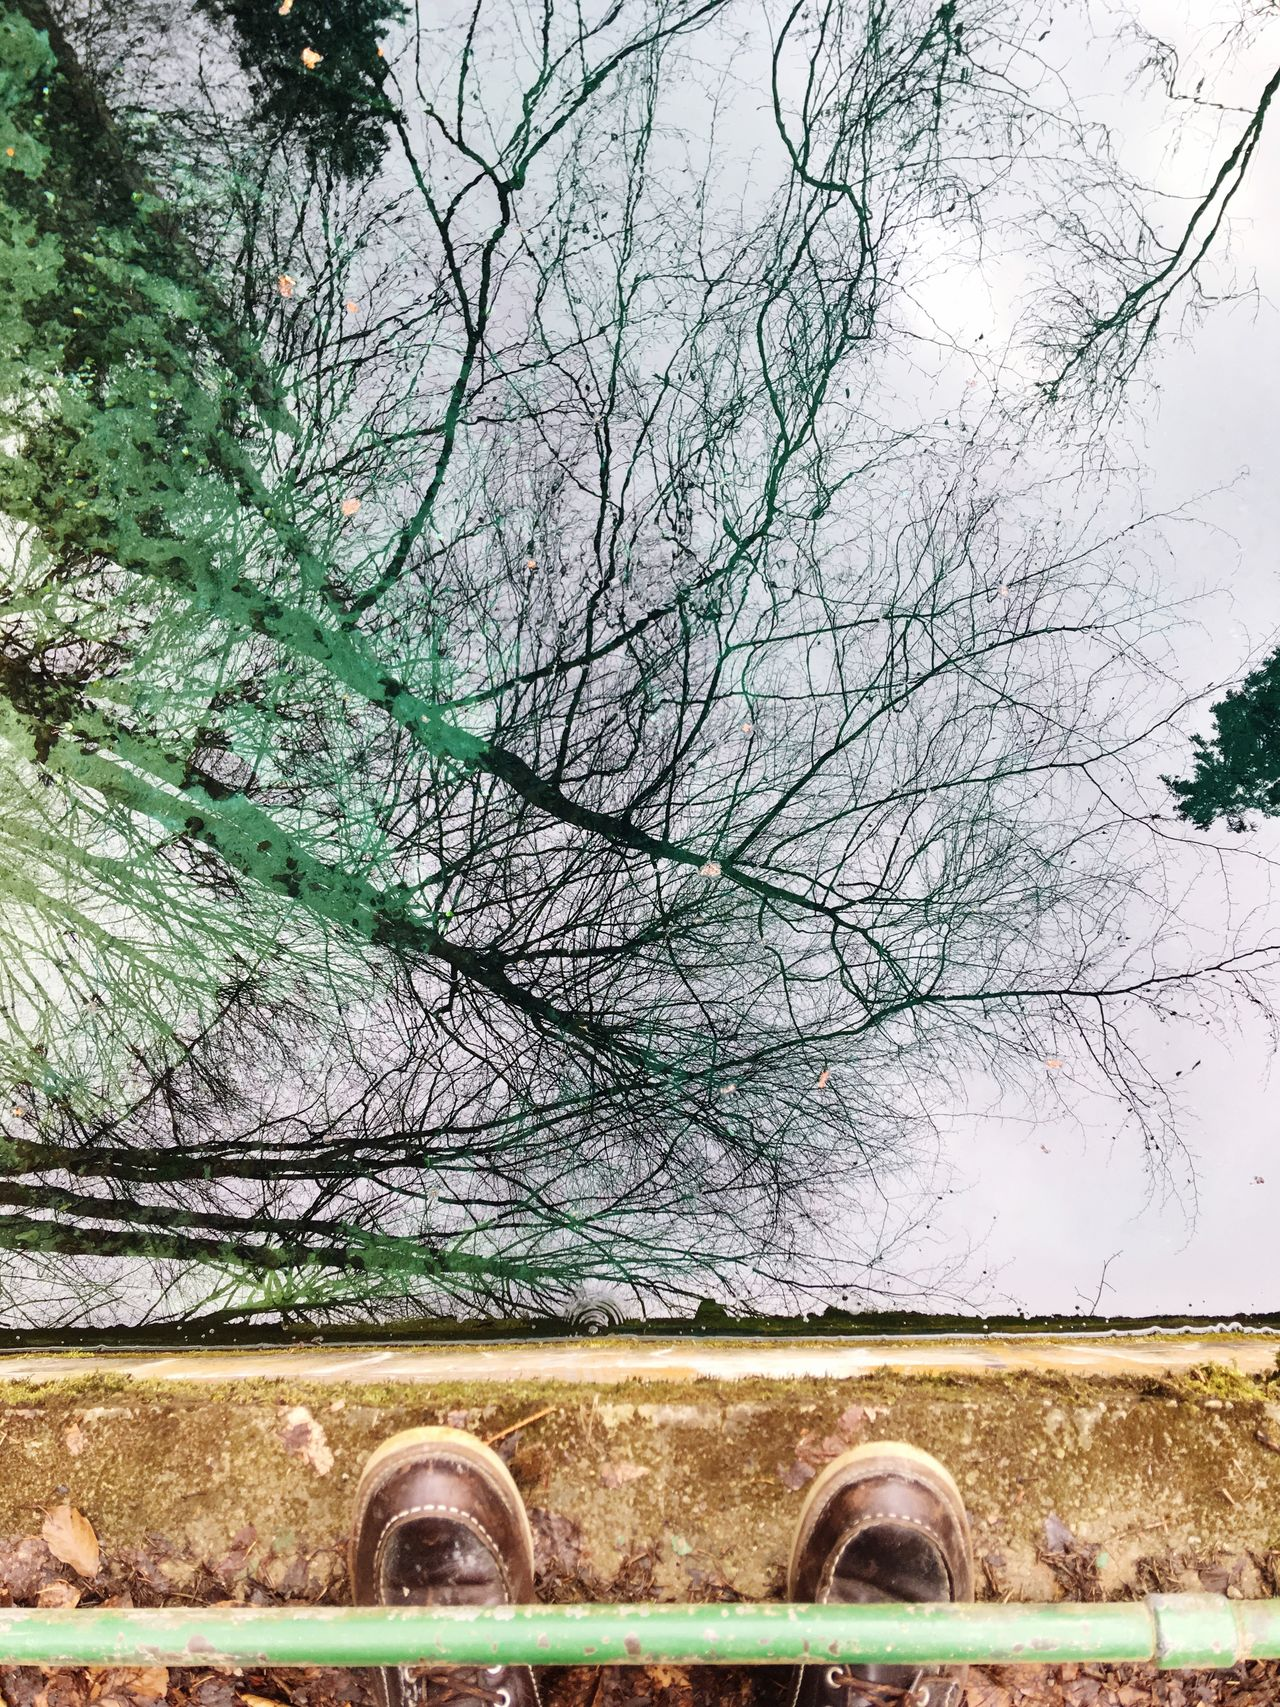 Tree Architecture Built Structure Nature Branch Beauty In Nature Bare Tree No People Day Outdoors Growth Building Exterior Scenics Sky Reflection Shoes Teufelsküche Bavaria